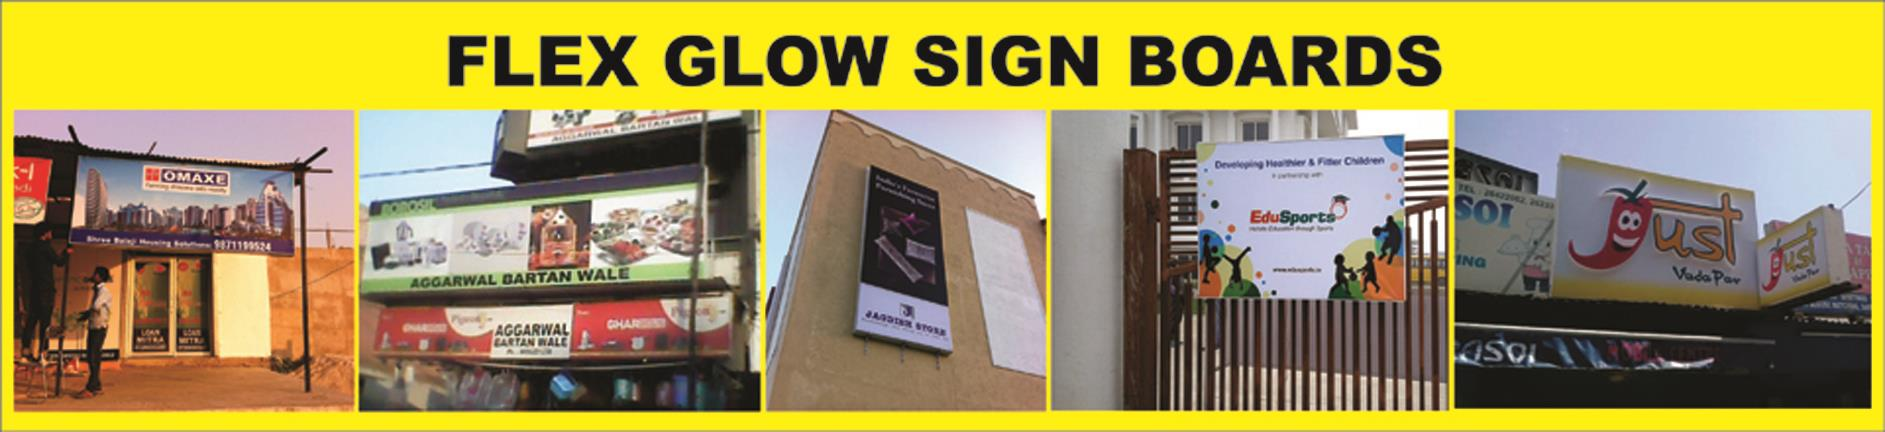 FLEX GLOW SIGN BOARDS AND FLEX  SIGNAGES:  ARE YOU LOOKING FOR  FLEX GLOW SIGN BOARDS:  WE AT DIMENSIONS INDIA 8860908890 ARE THE LEADING MANUFACTURERS IN DELHI DELHI NCR, :    - by LED SIGN BOARD +918860908890, Delhi